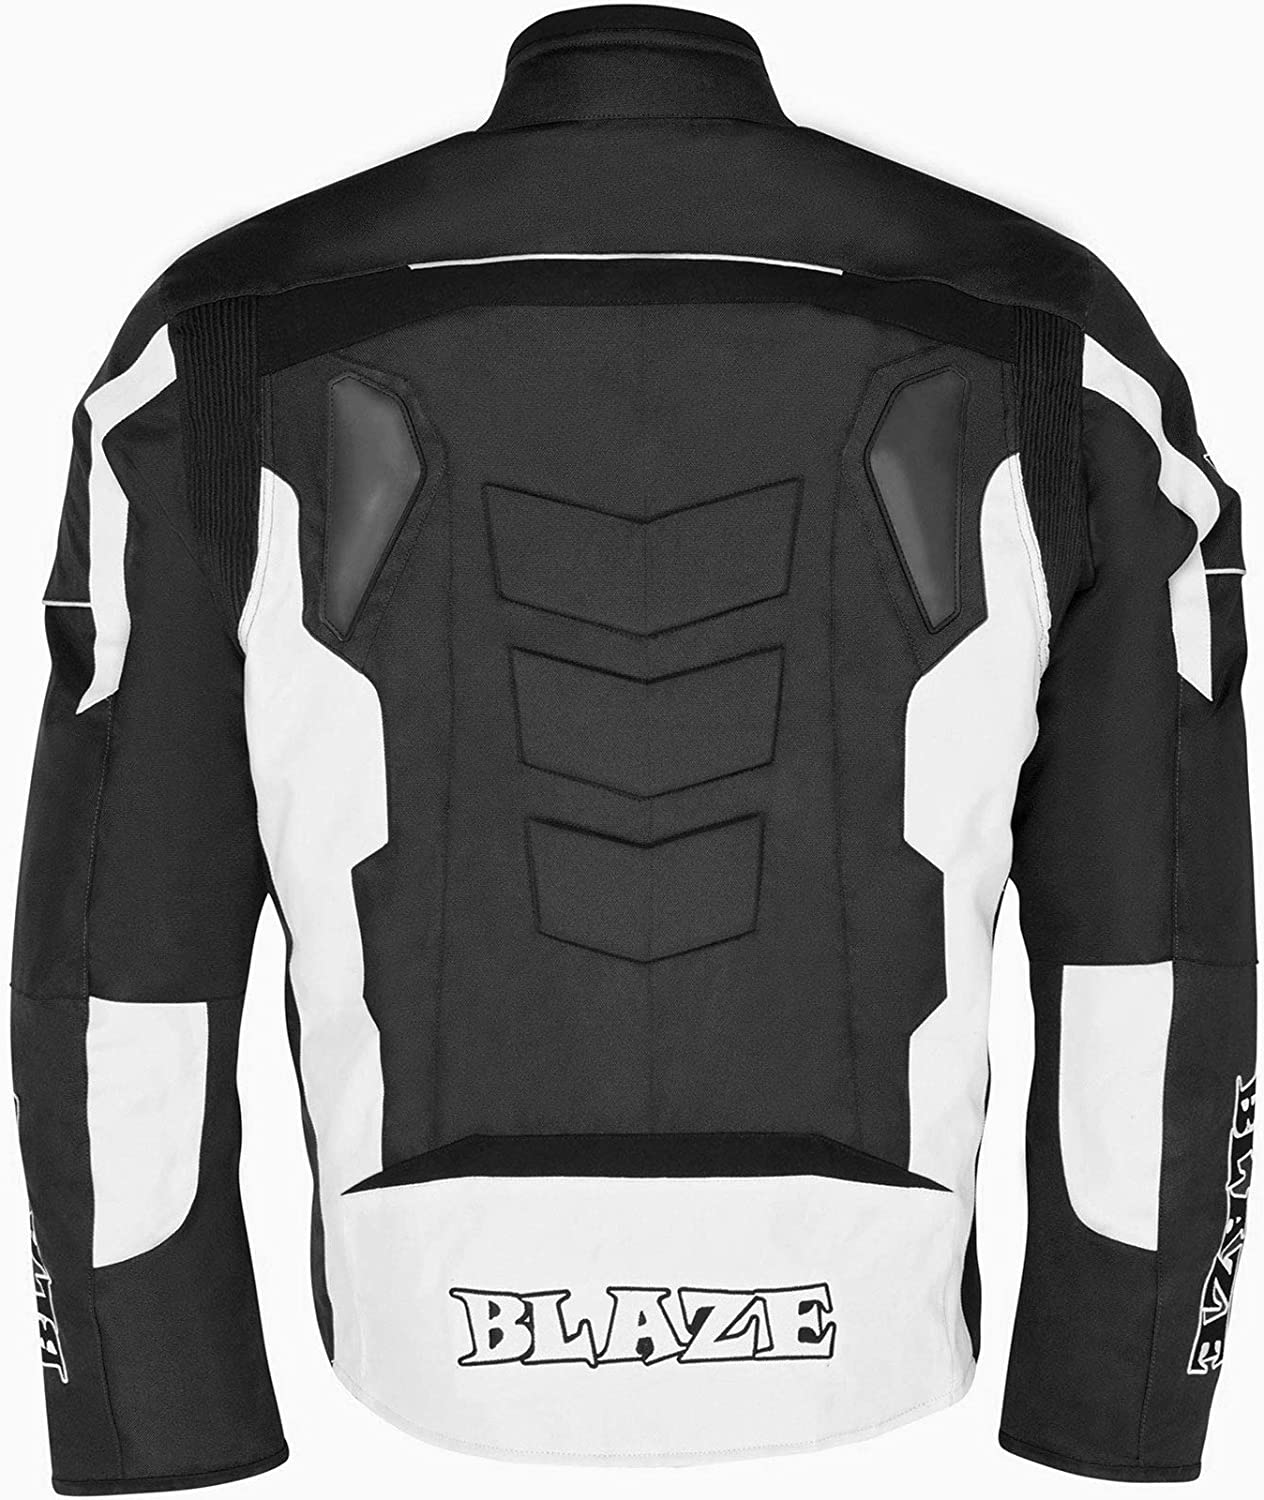 Blue, 5XL Motorcycle Riding padded Breathable Jacket Waterproof Textile Full Body Protection Gear Motorbike accessories for men women Winter Summer Armour